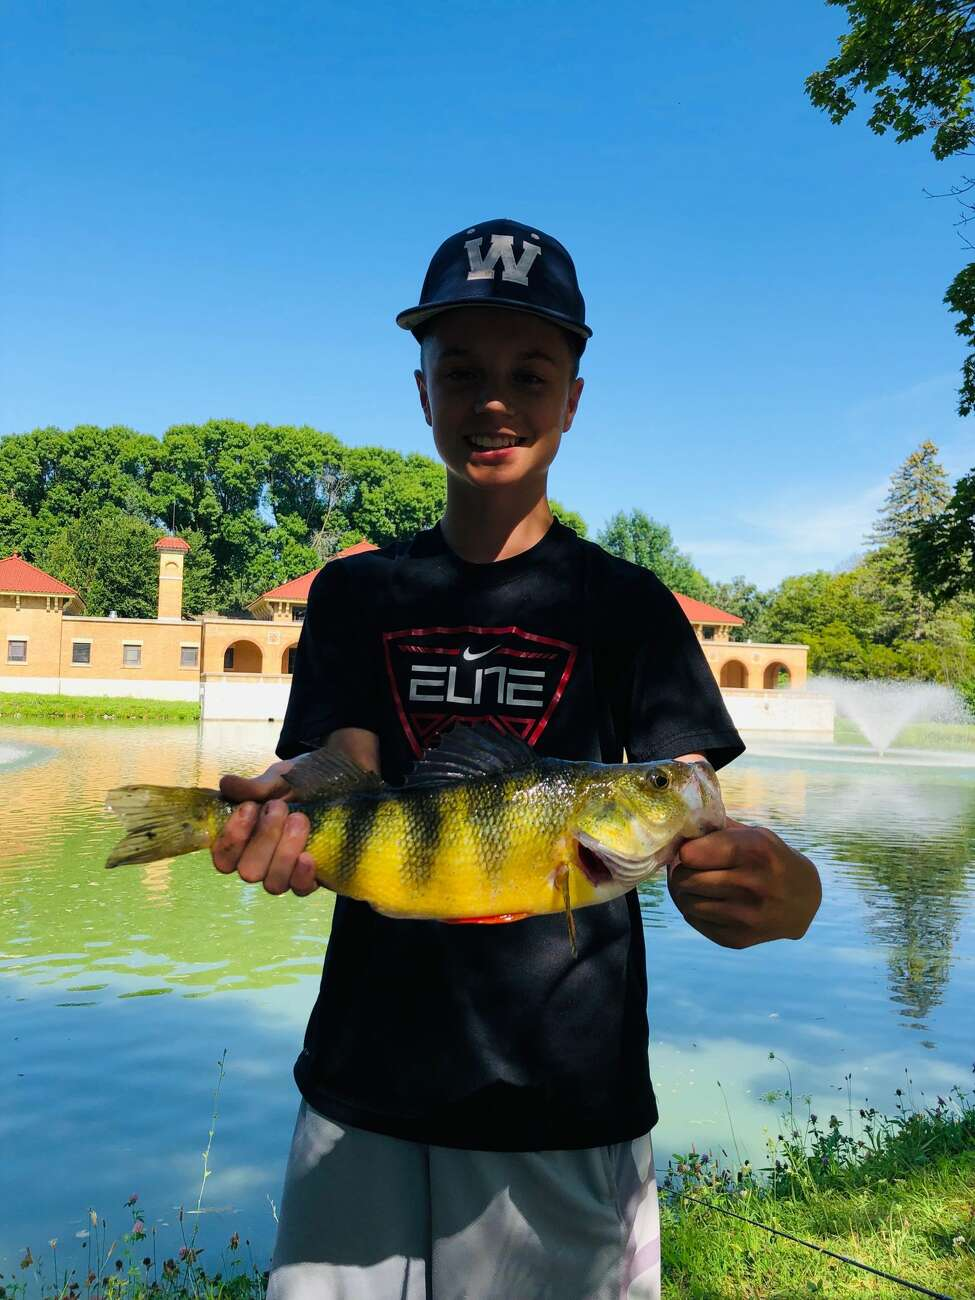 Fourteen-year-old George Abdo of Glenmont caught a 3-pound, 5-ounce, yellow perch on Monday, Aug. 5, 2019, in Albany's Washington Park Lake. Keep clicking through the slideshow for big (and sometimes little) catches in the state's freshwater lakes and rivers.